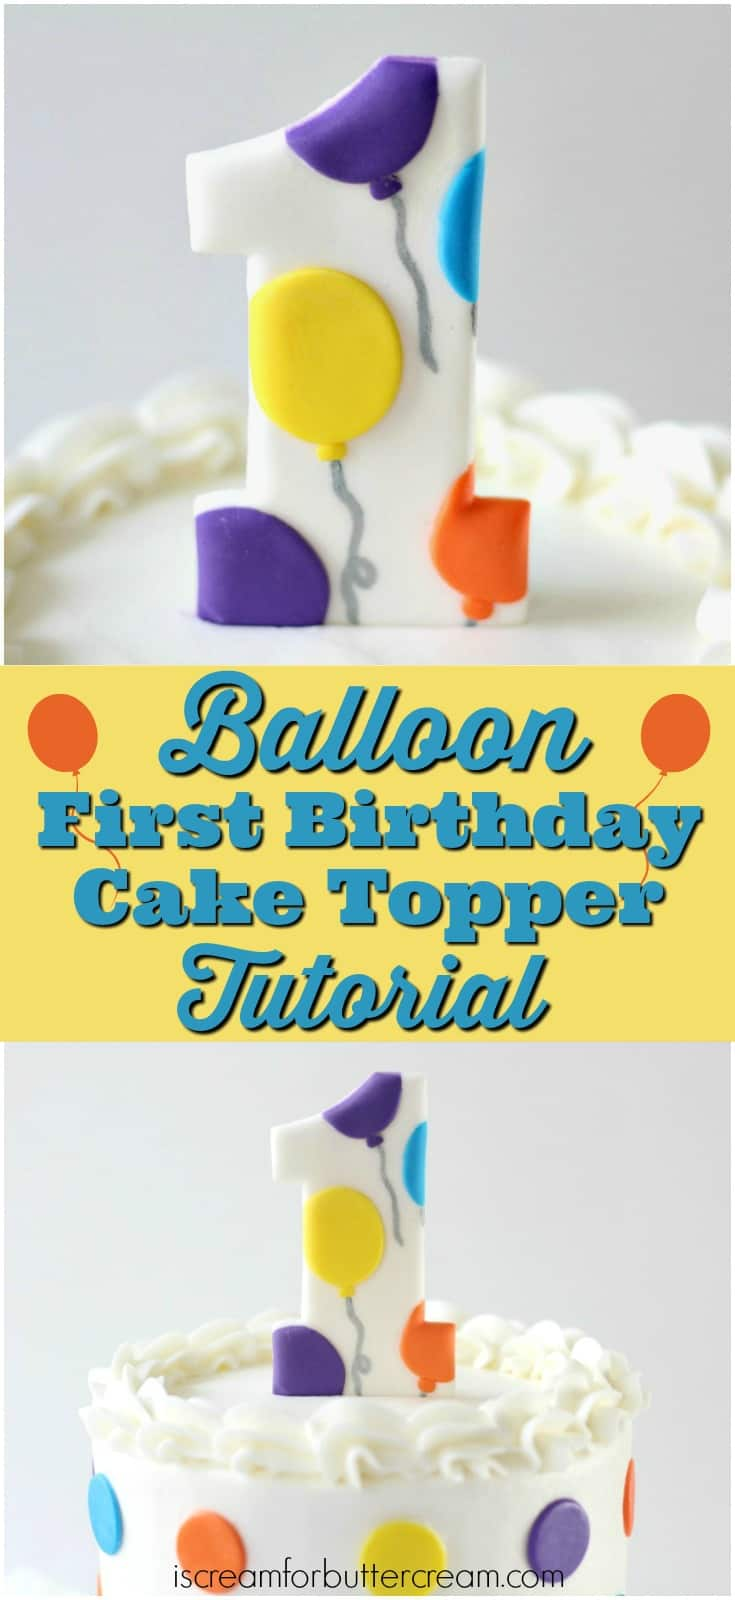 Balloon First Birthday Cake Topper